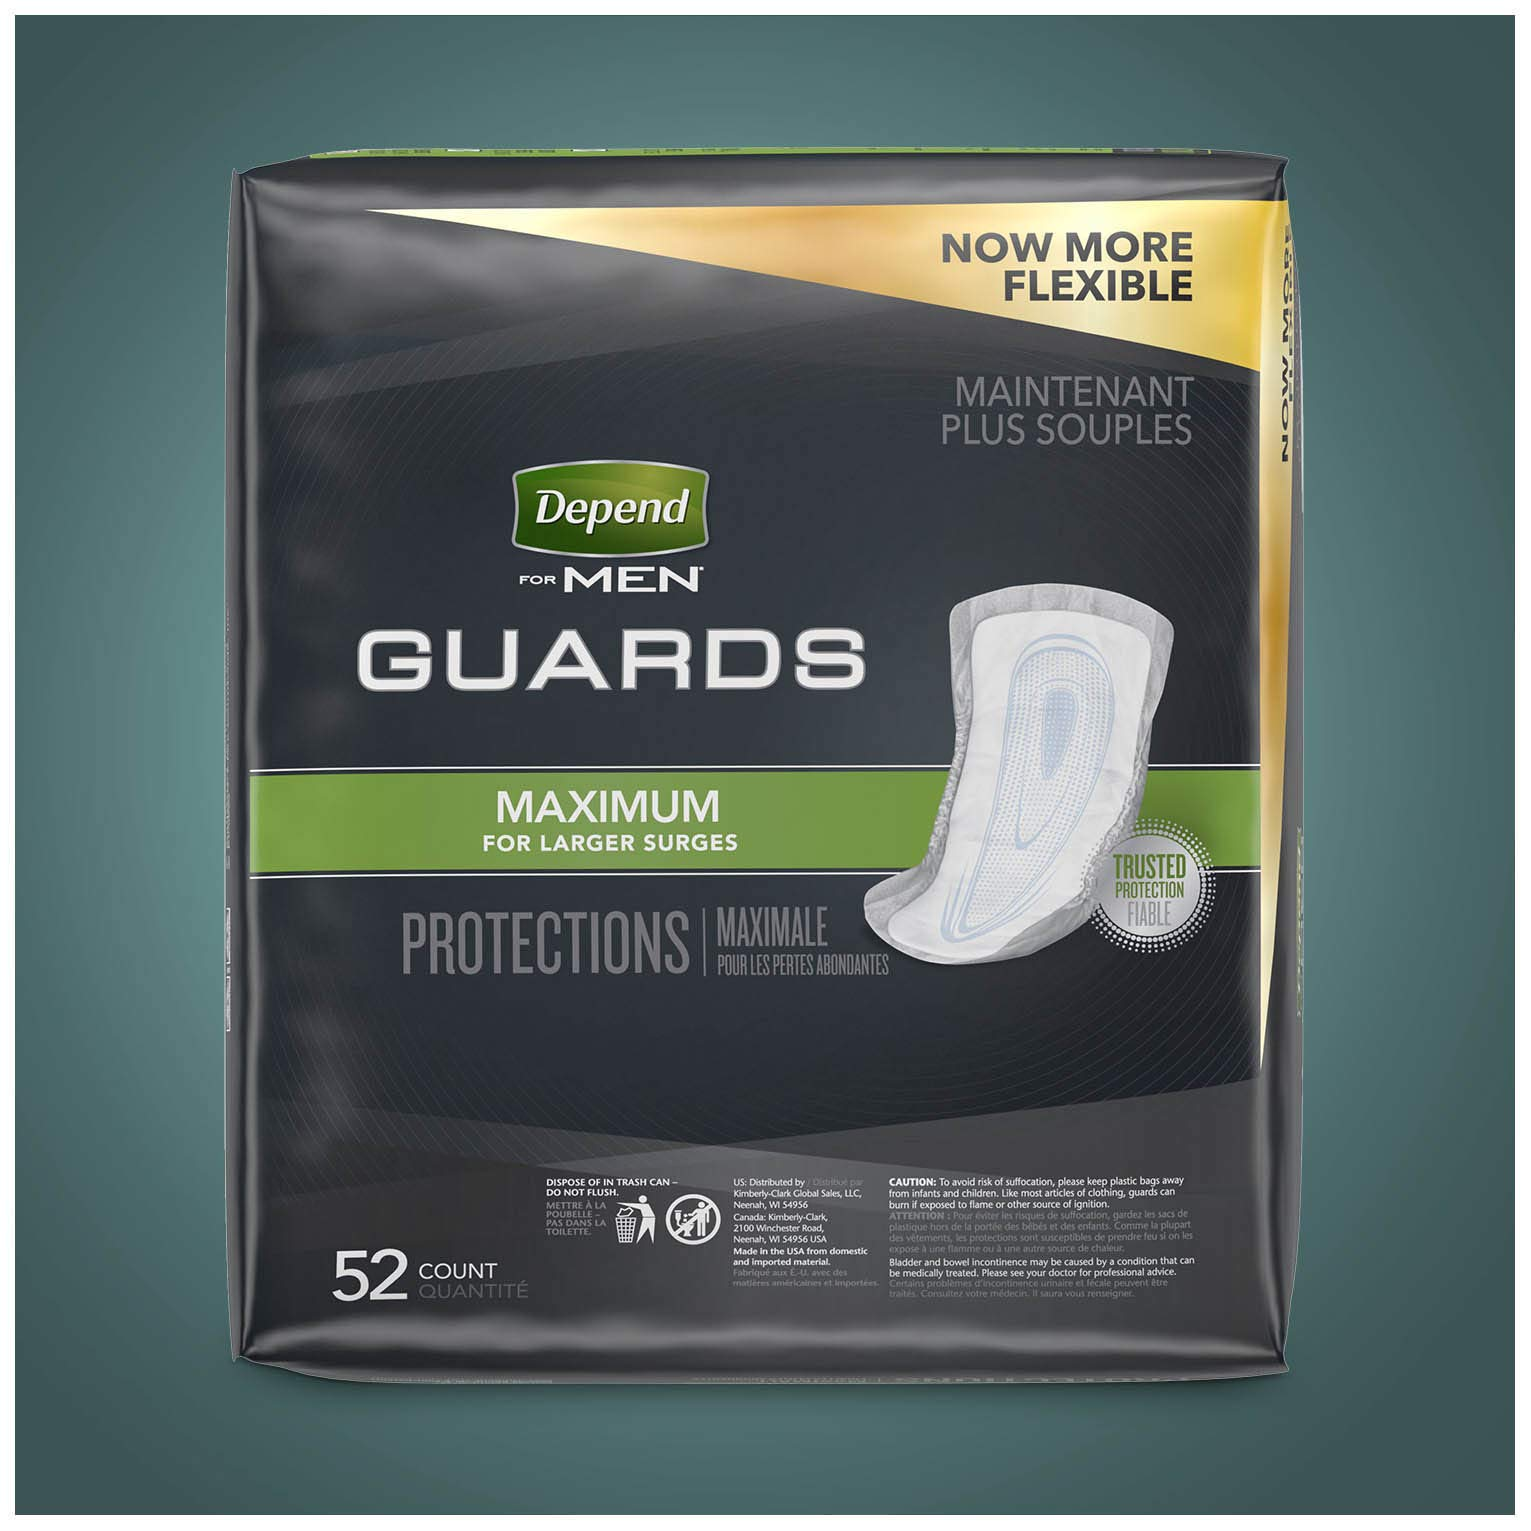 Depend Incontinence Guards for Men, Maximum Absorbency, 2 Packs of 52, 104 Total Count (Packaging May Vary) by Depend